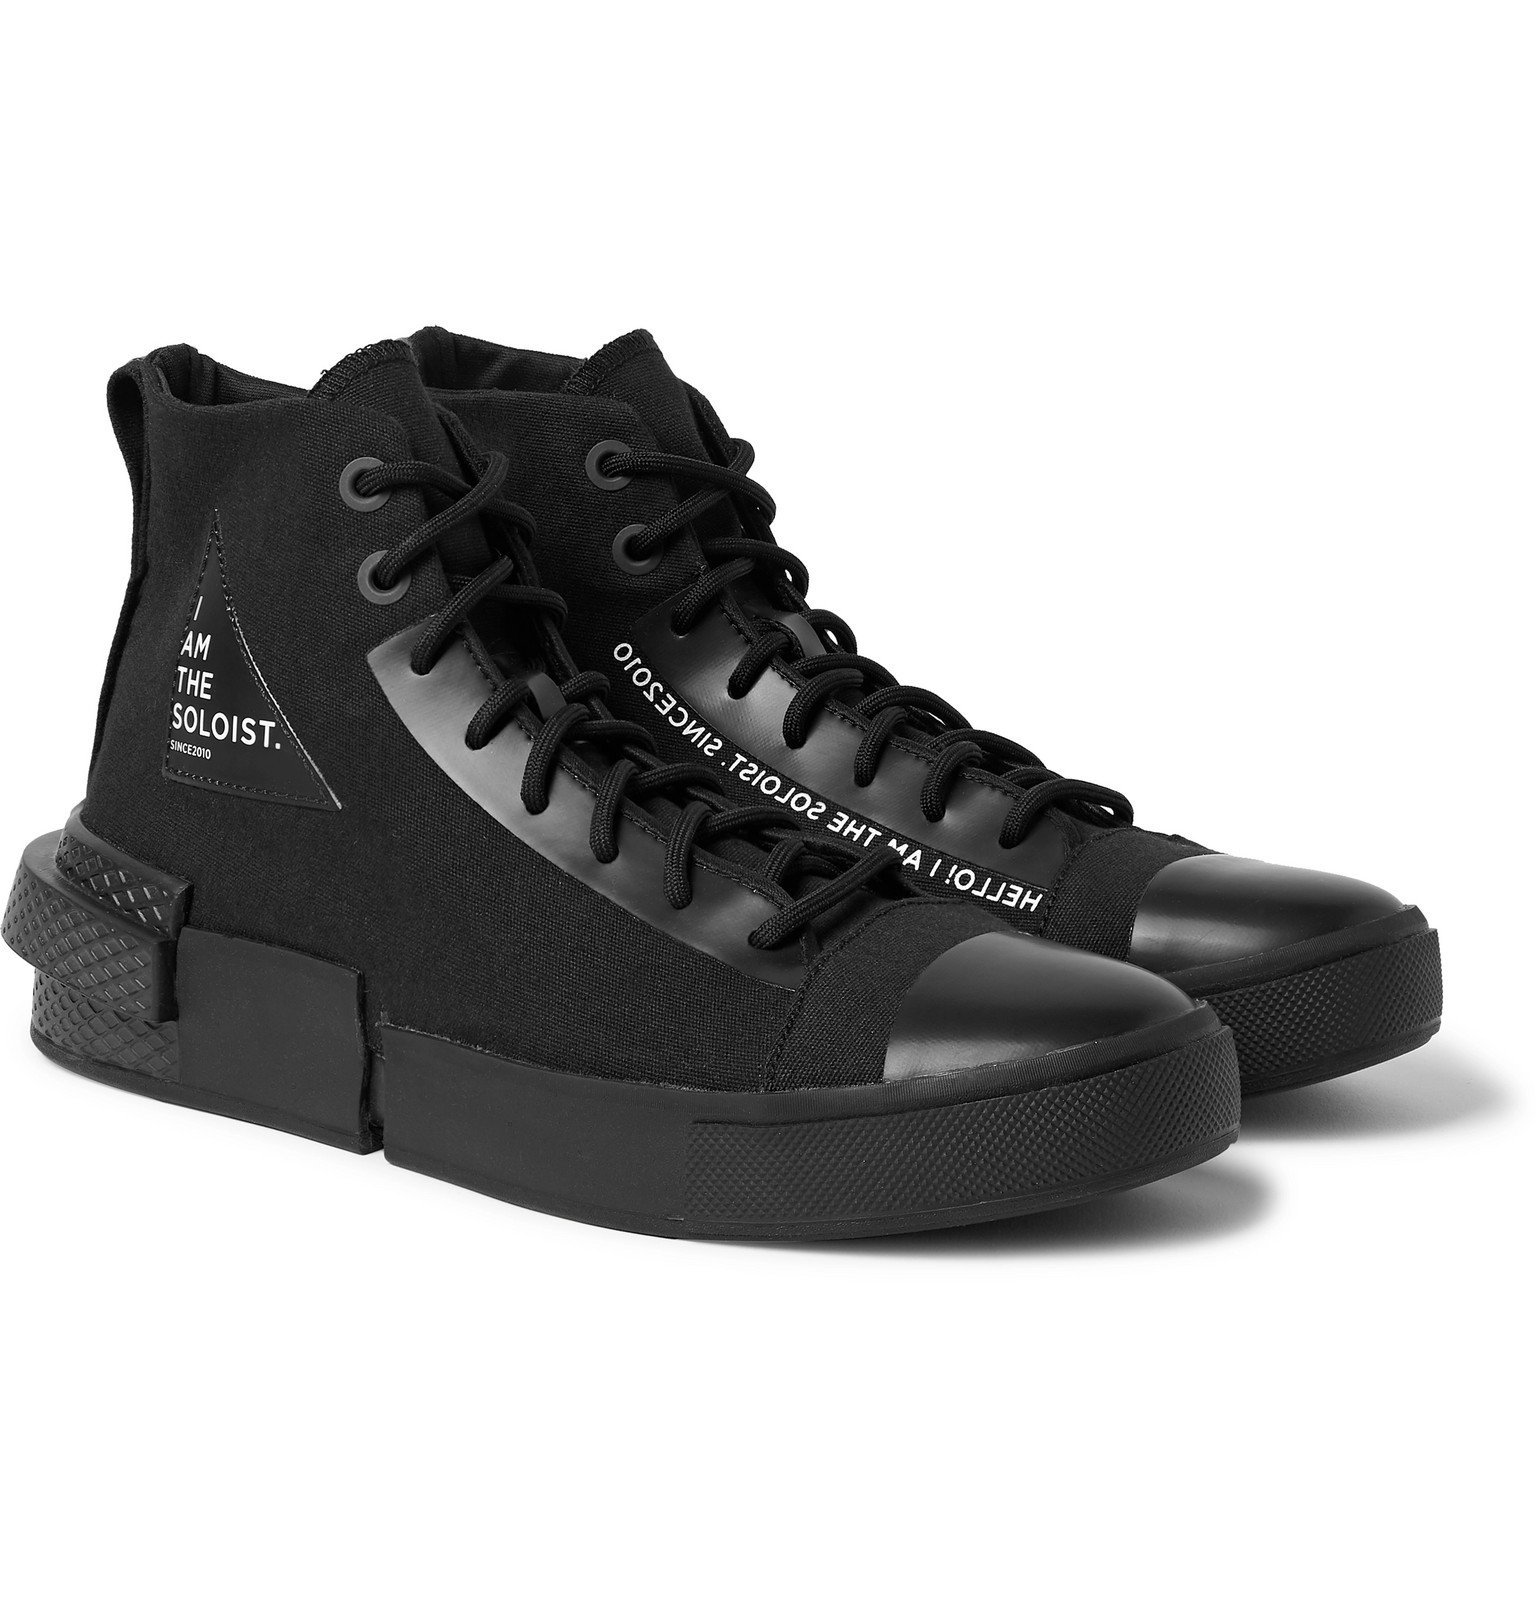 Photo: Converse - TheSoloist All Star Disrupt CX Canvas High-Top Sneakers - Black